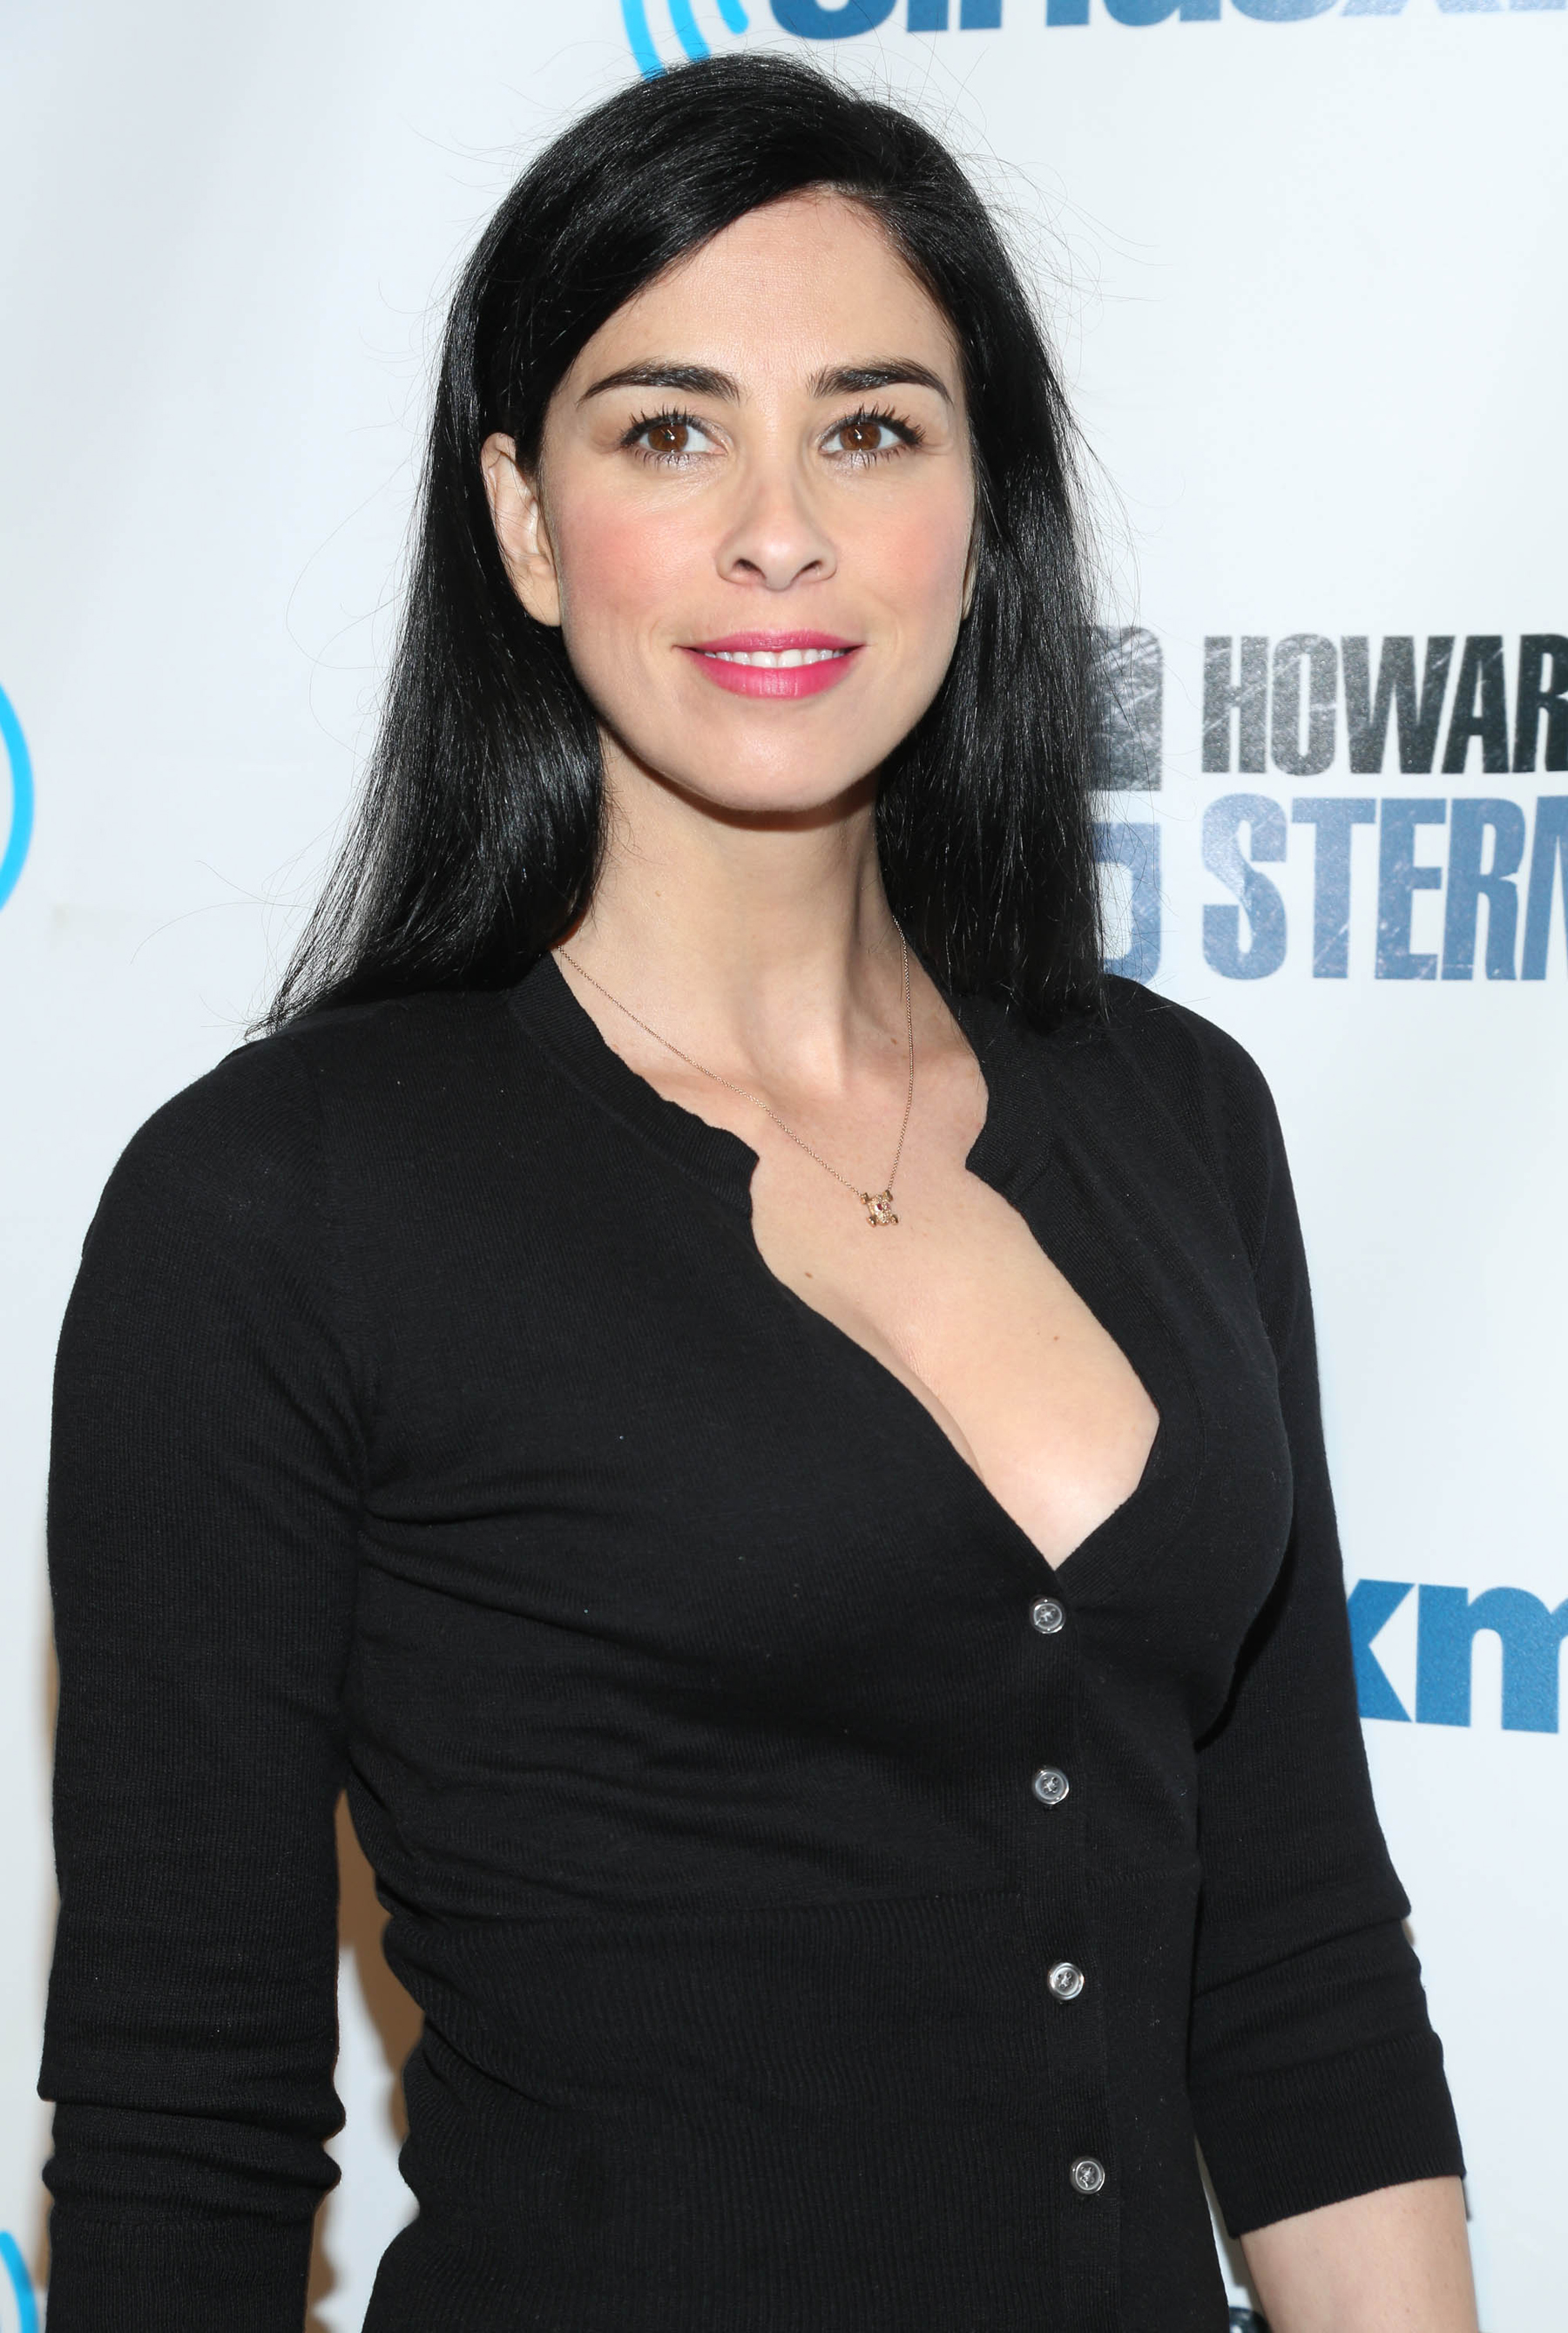 Sarah Silverman: 'I'm the Poorest Famous Person in the World'